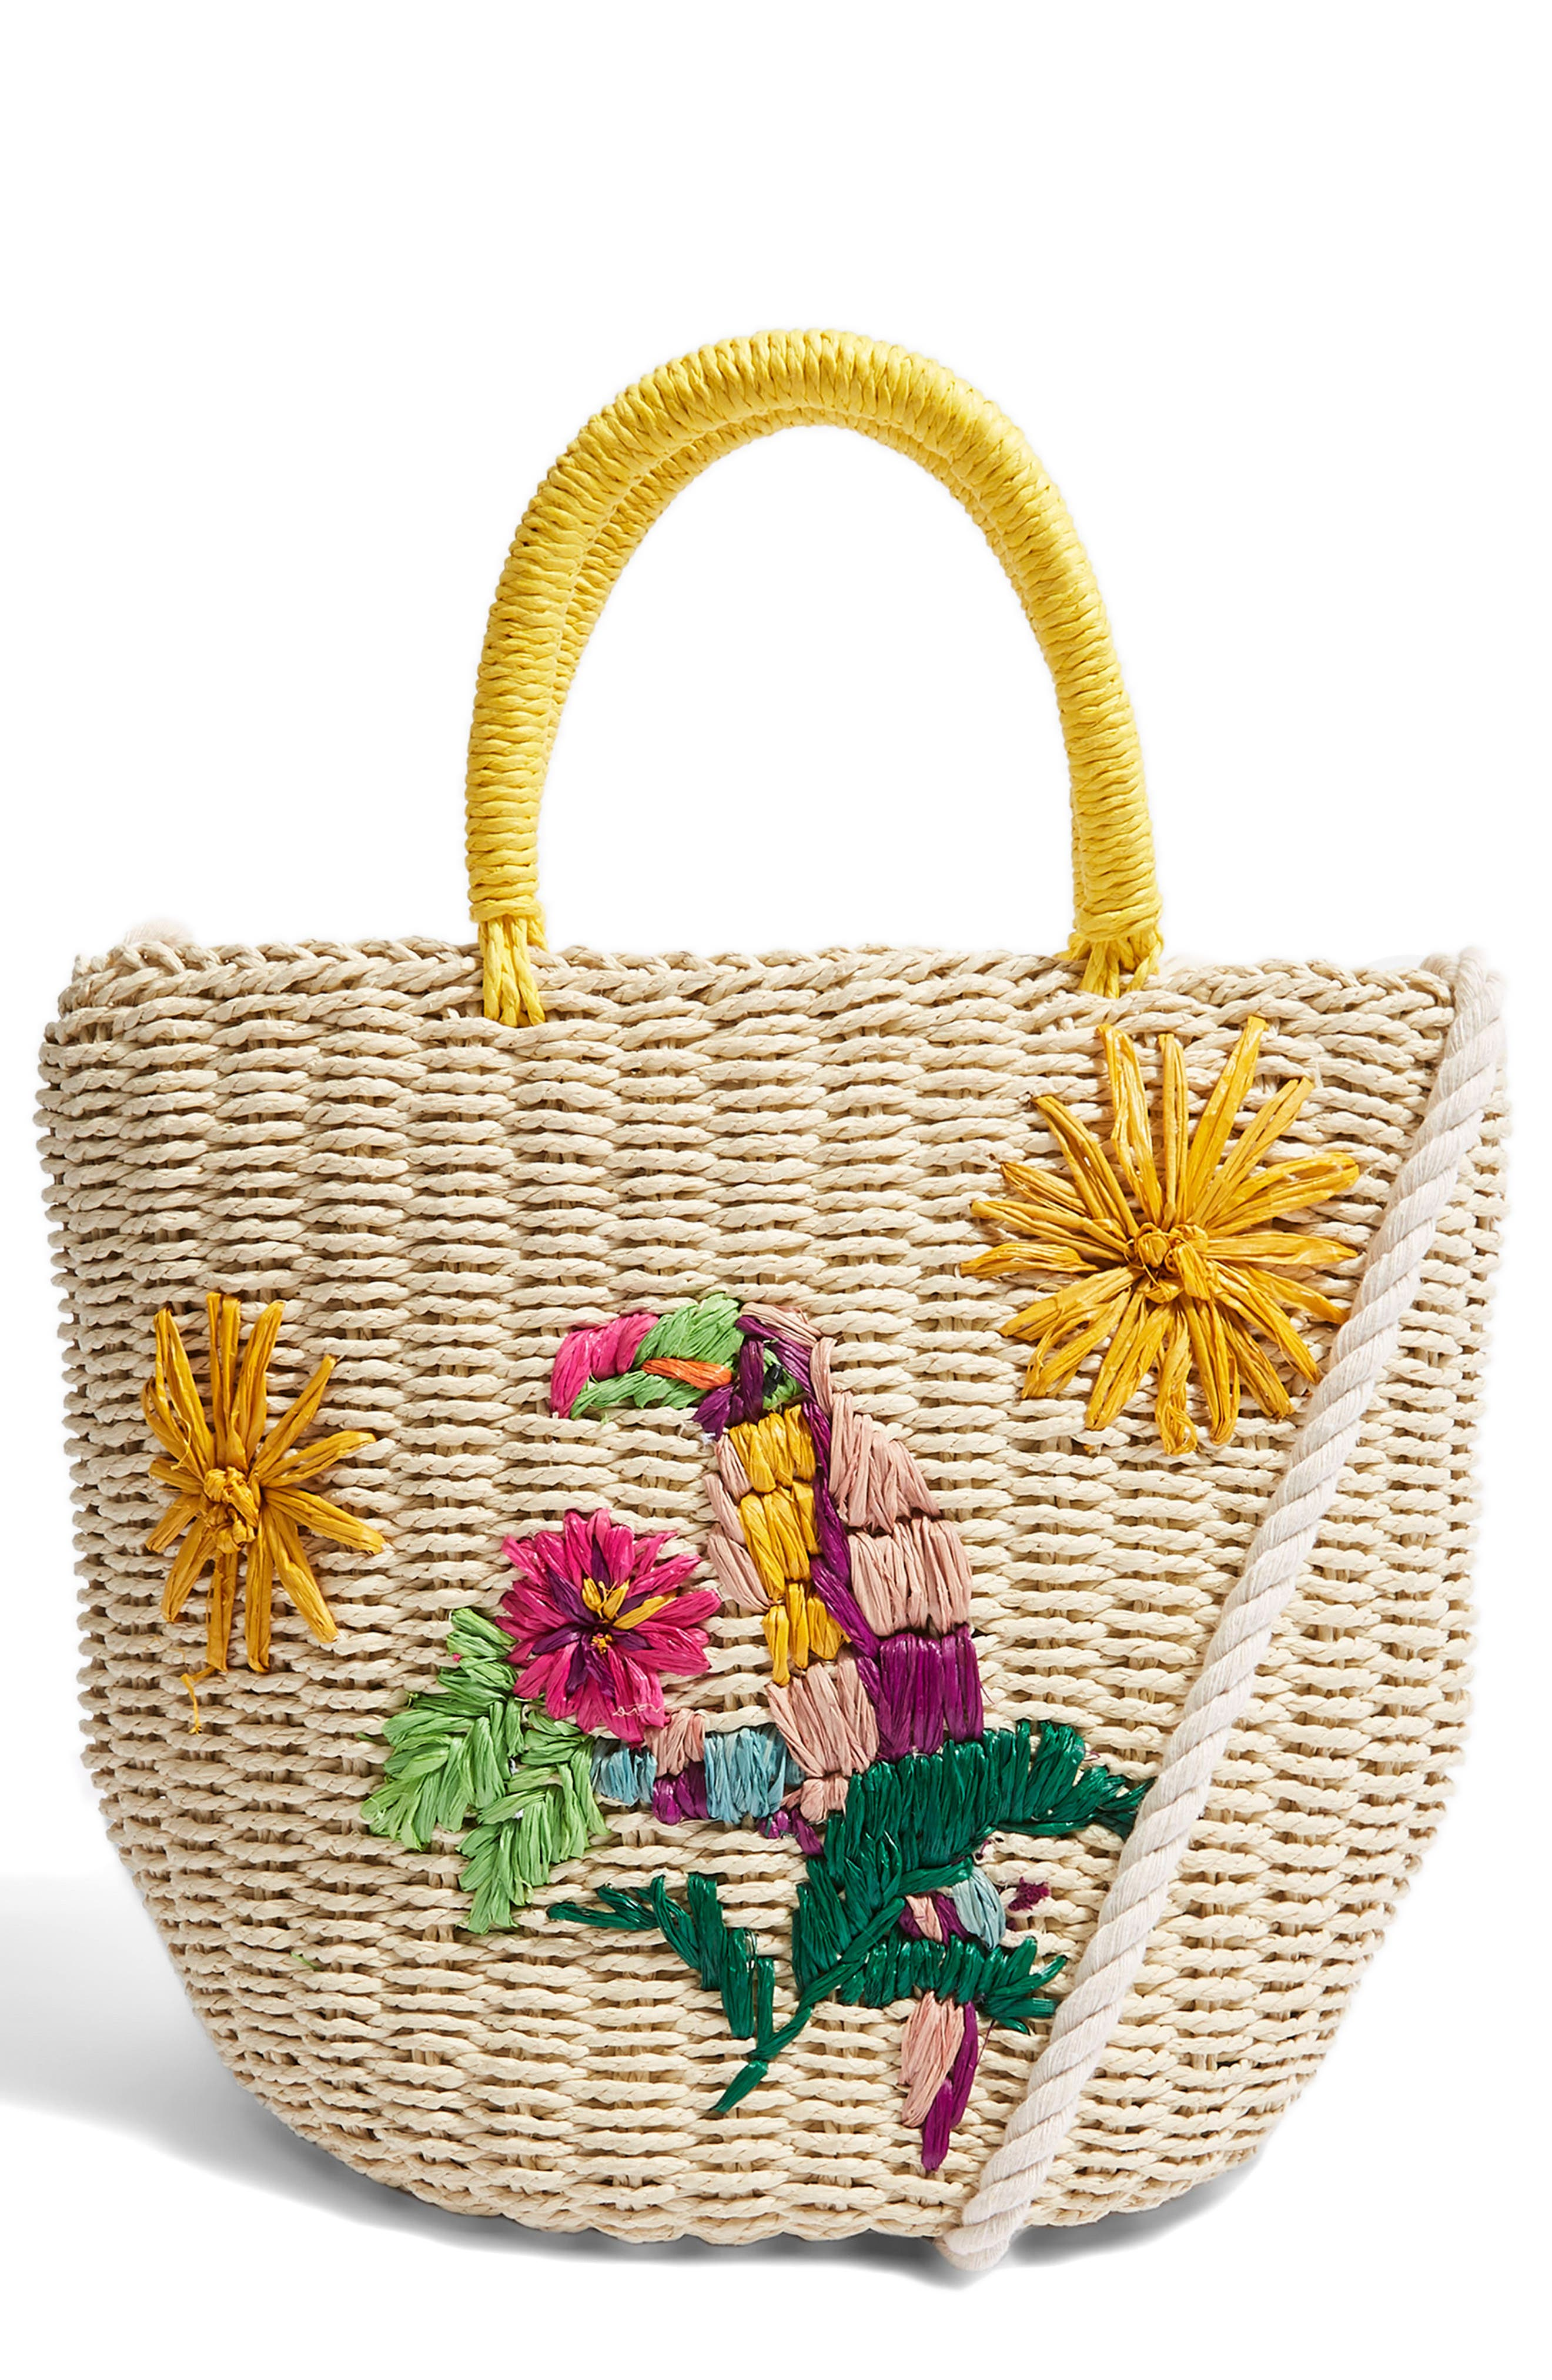 Betsy Toucan Straw Bag,                         Main,                         color, Nude Multi